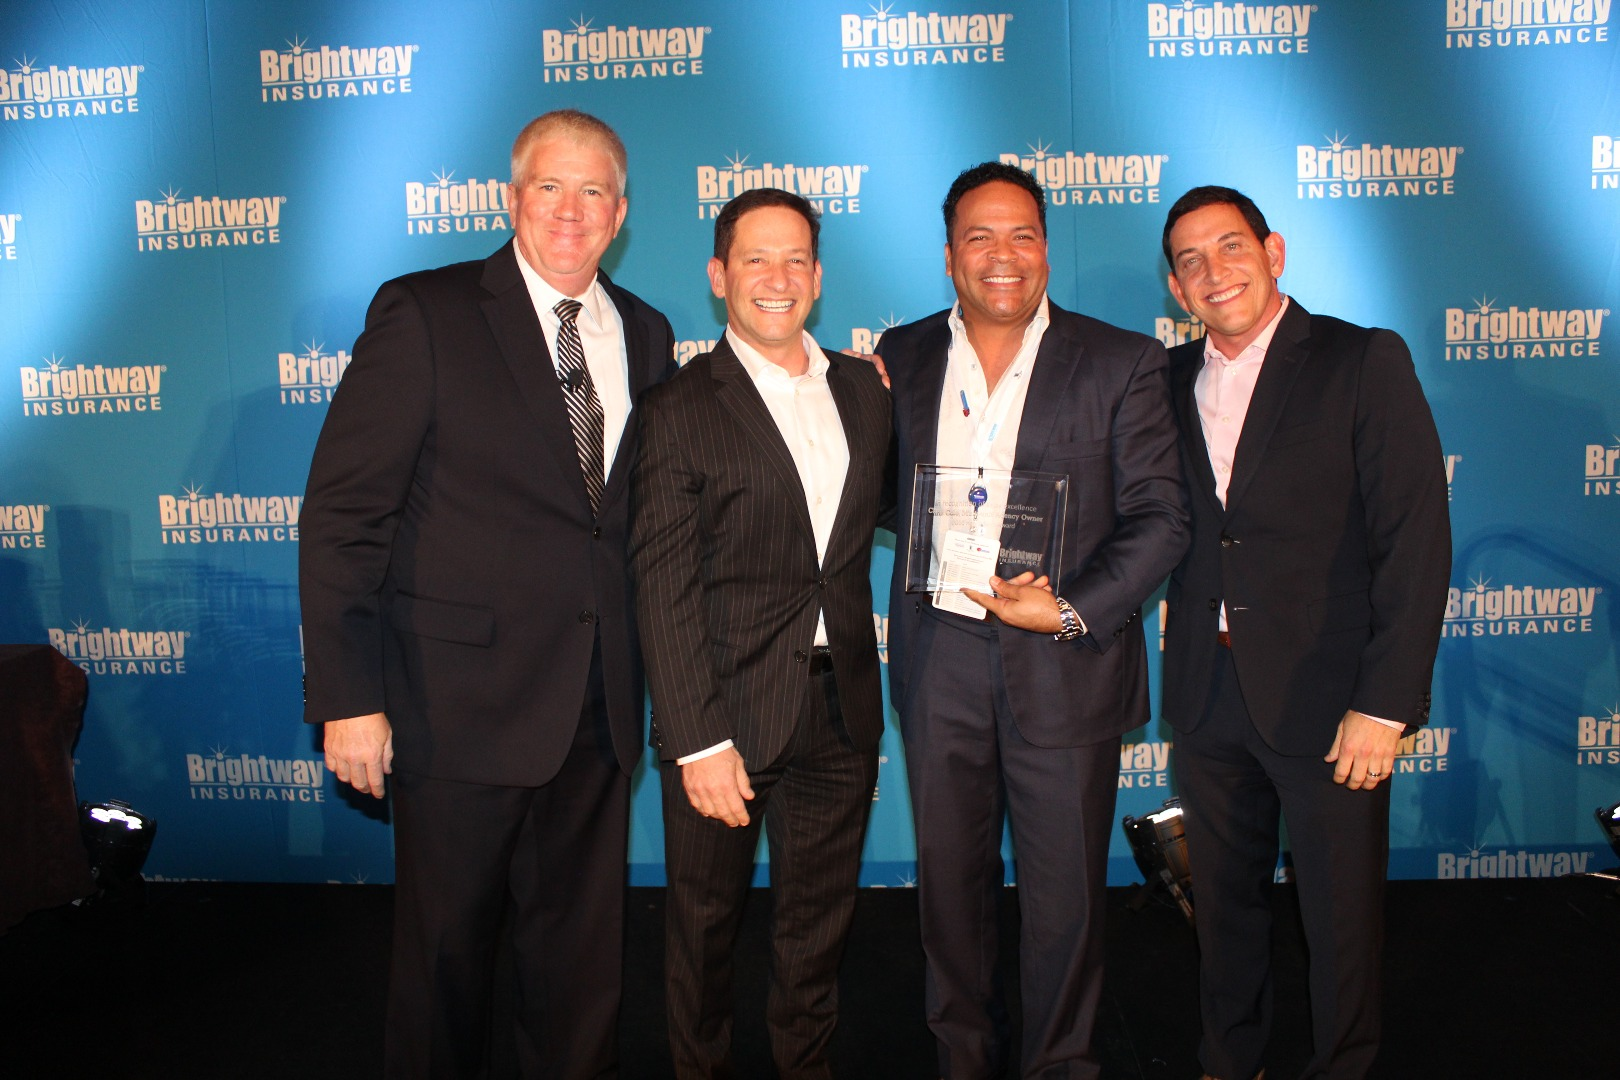 01.18.2017_Multi-unit Owner, Chris Cole, brings home Brightway Insurance's top award for exceptional performance in 2016.JPG